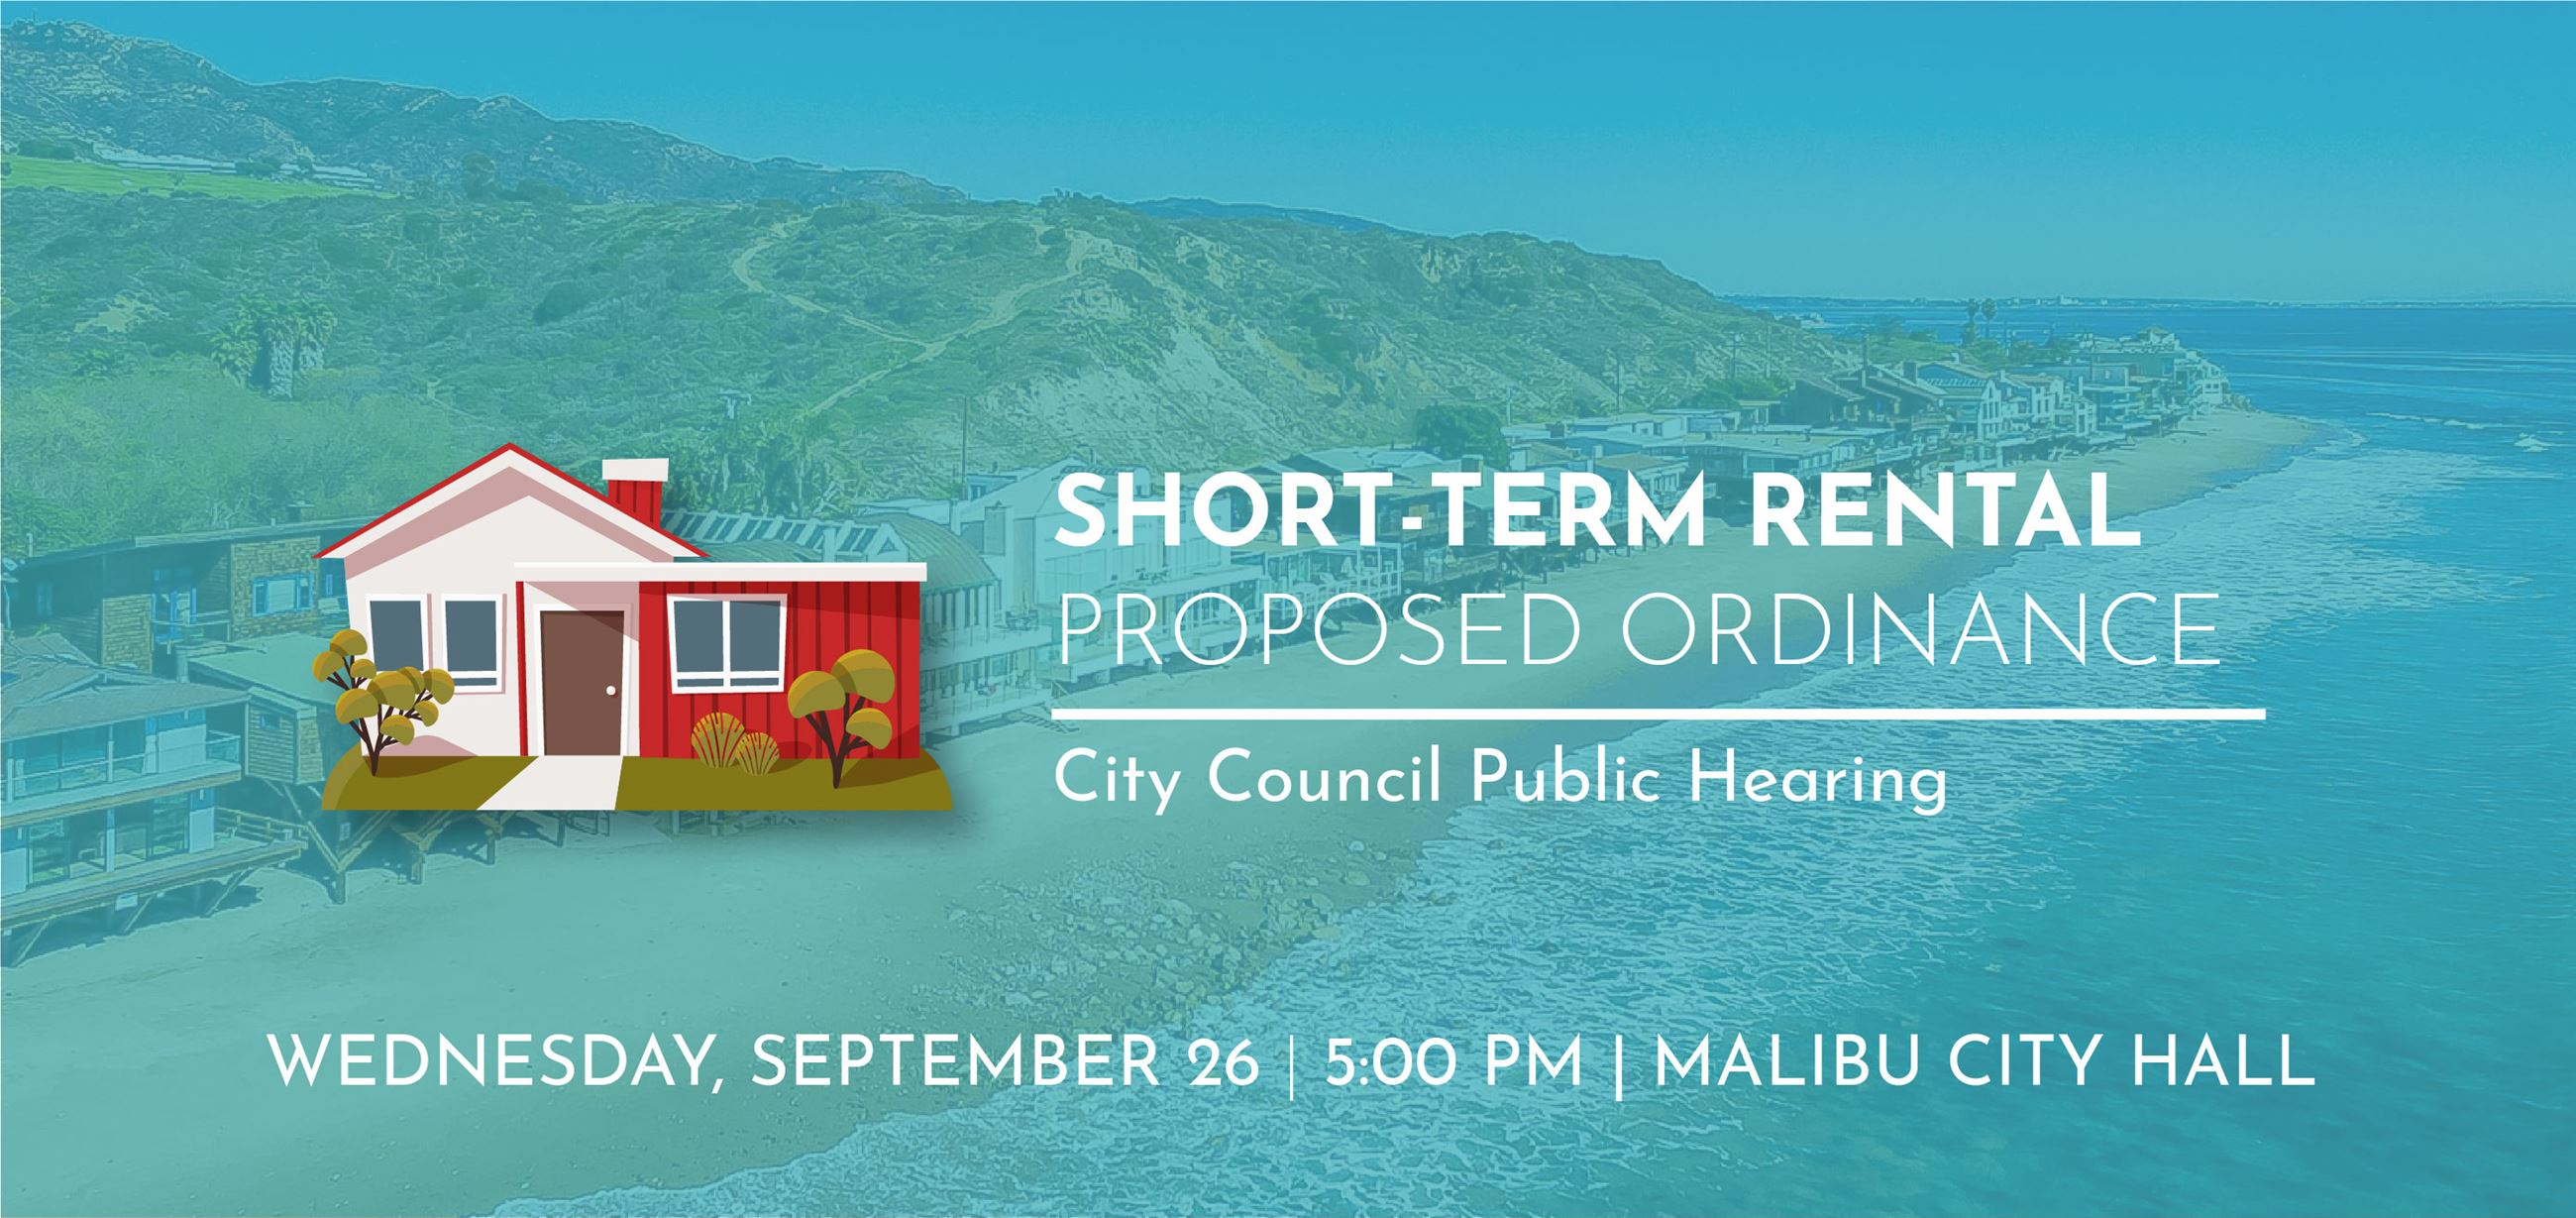 Short Term Rental Ordinance - September 26, 2018 Public Hearing